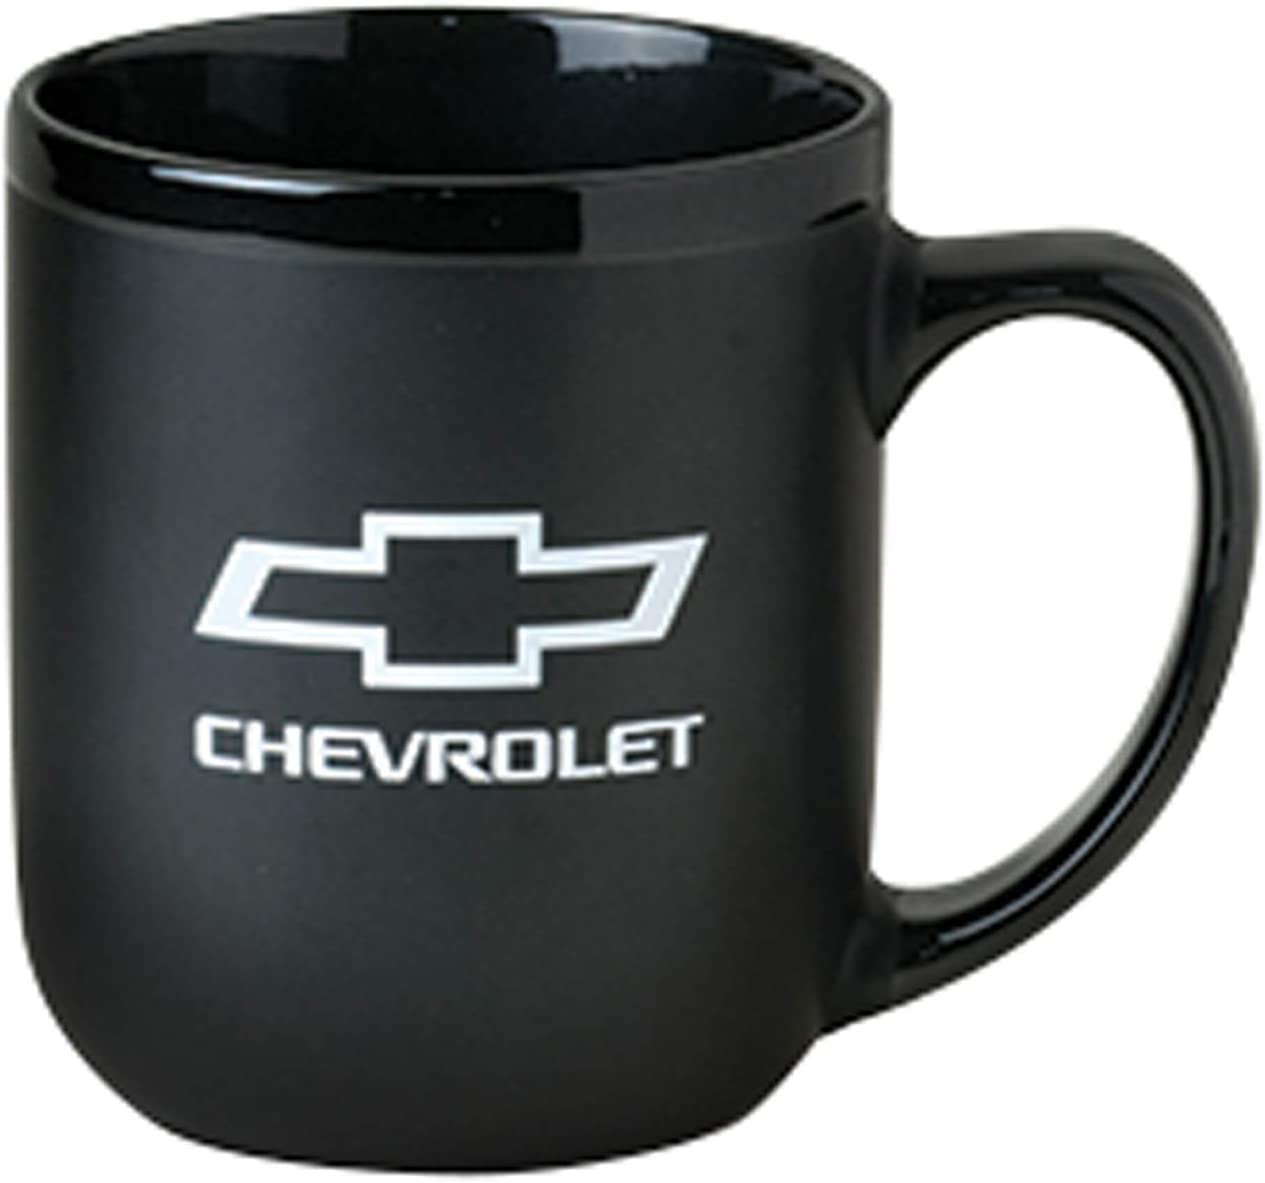 Gregs Automotive Compatible Chevrolet Chevy Mug Black Bundle Includes 1 Mug and 1 Driving Style Decal